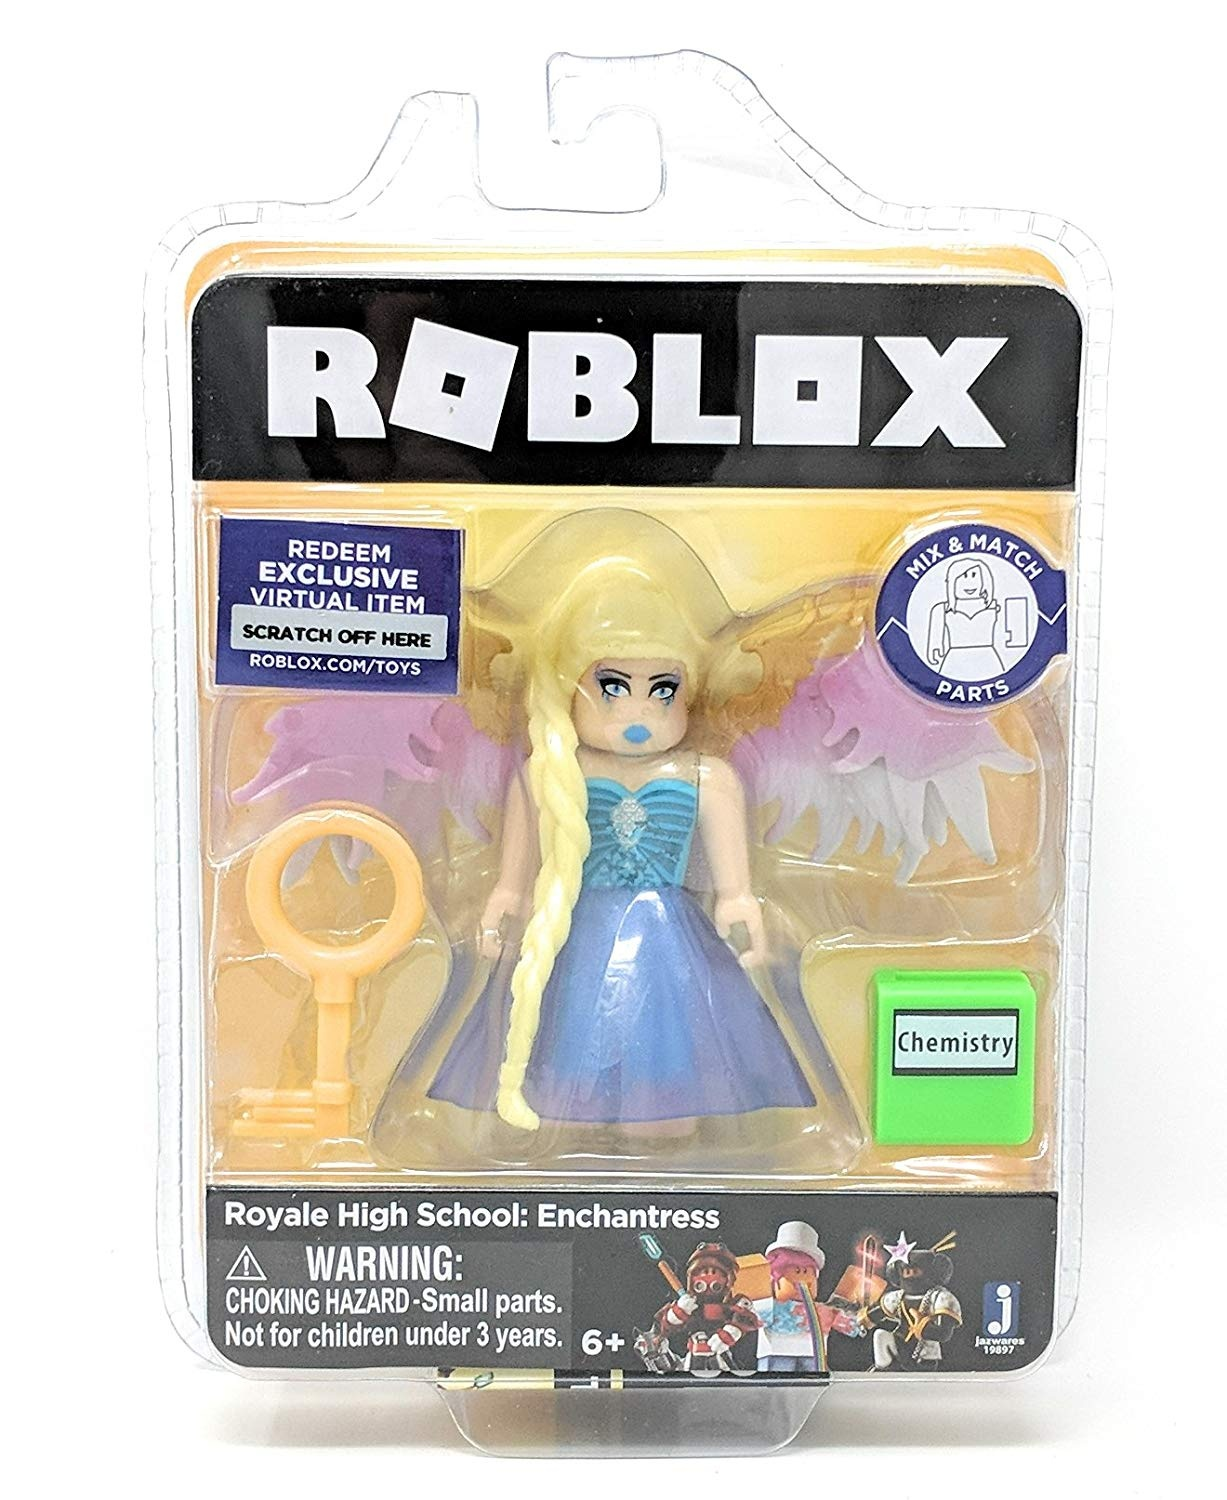 Roblox Gold Collection Royale High School Enchantress Single Figure Pack With Exclusive Virtual Item Code - all roblox redeem items